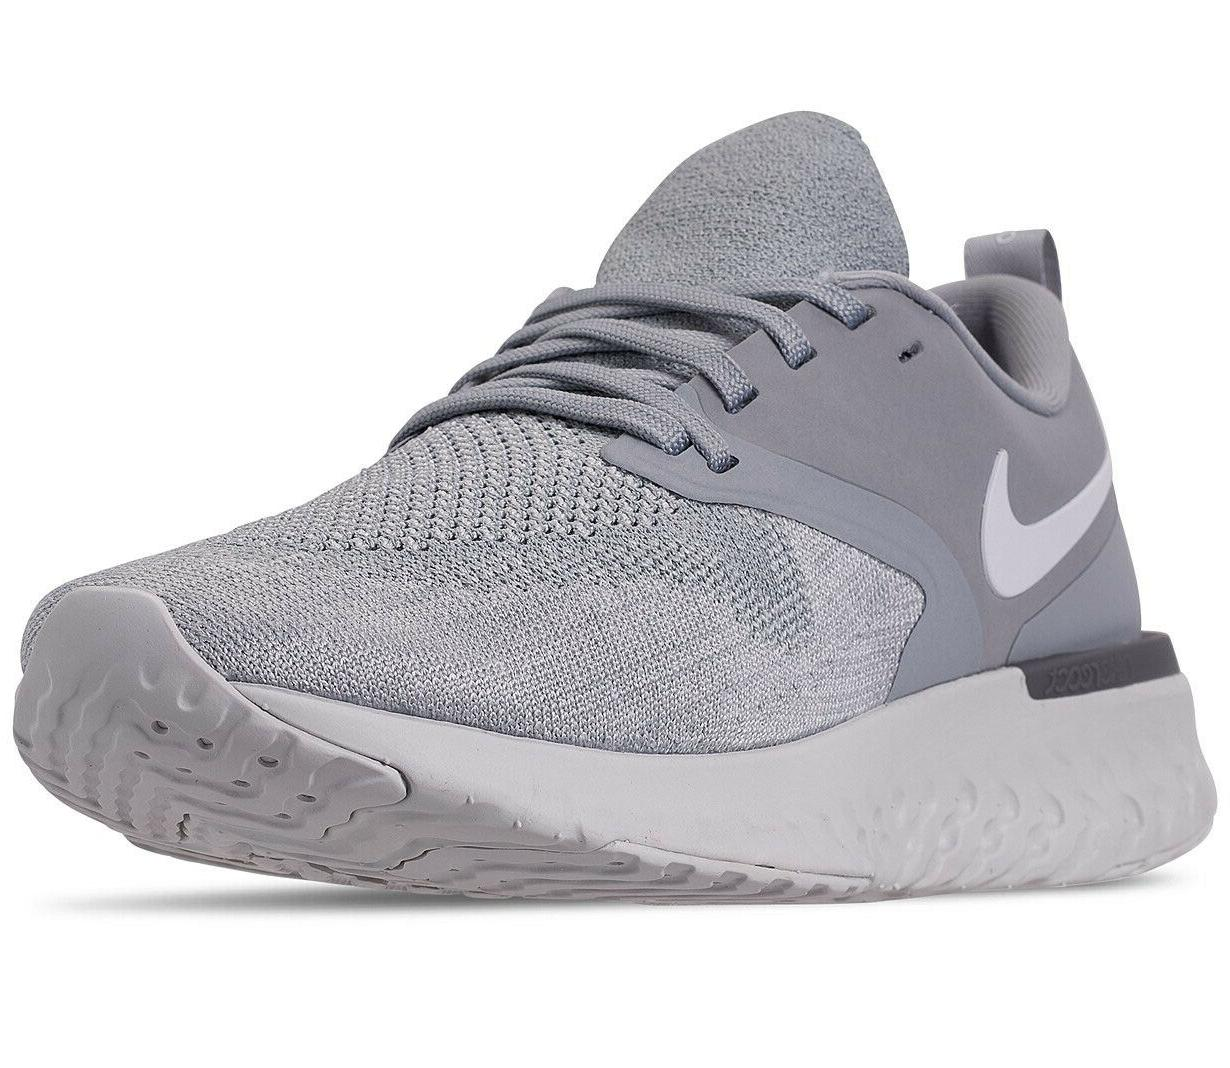 mens running shoes odyssey react 2 flyknit